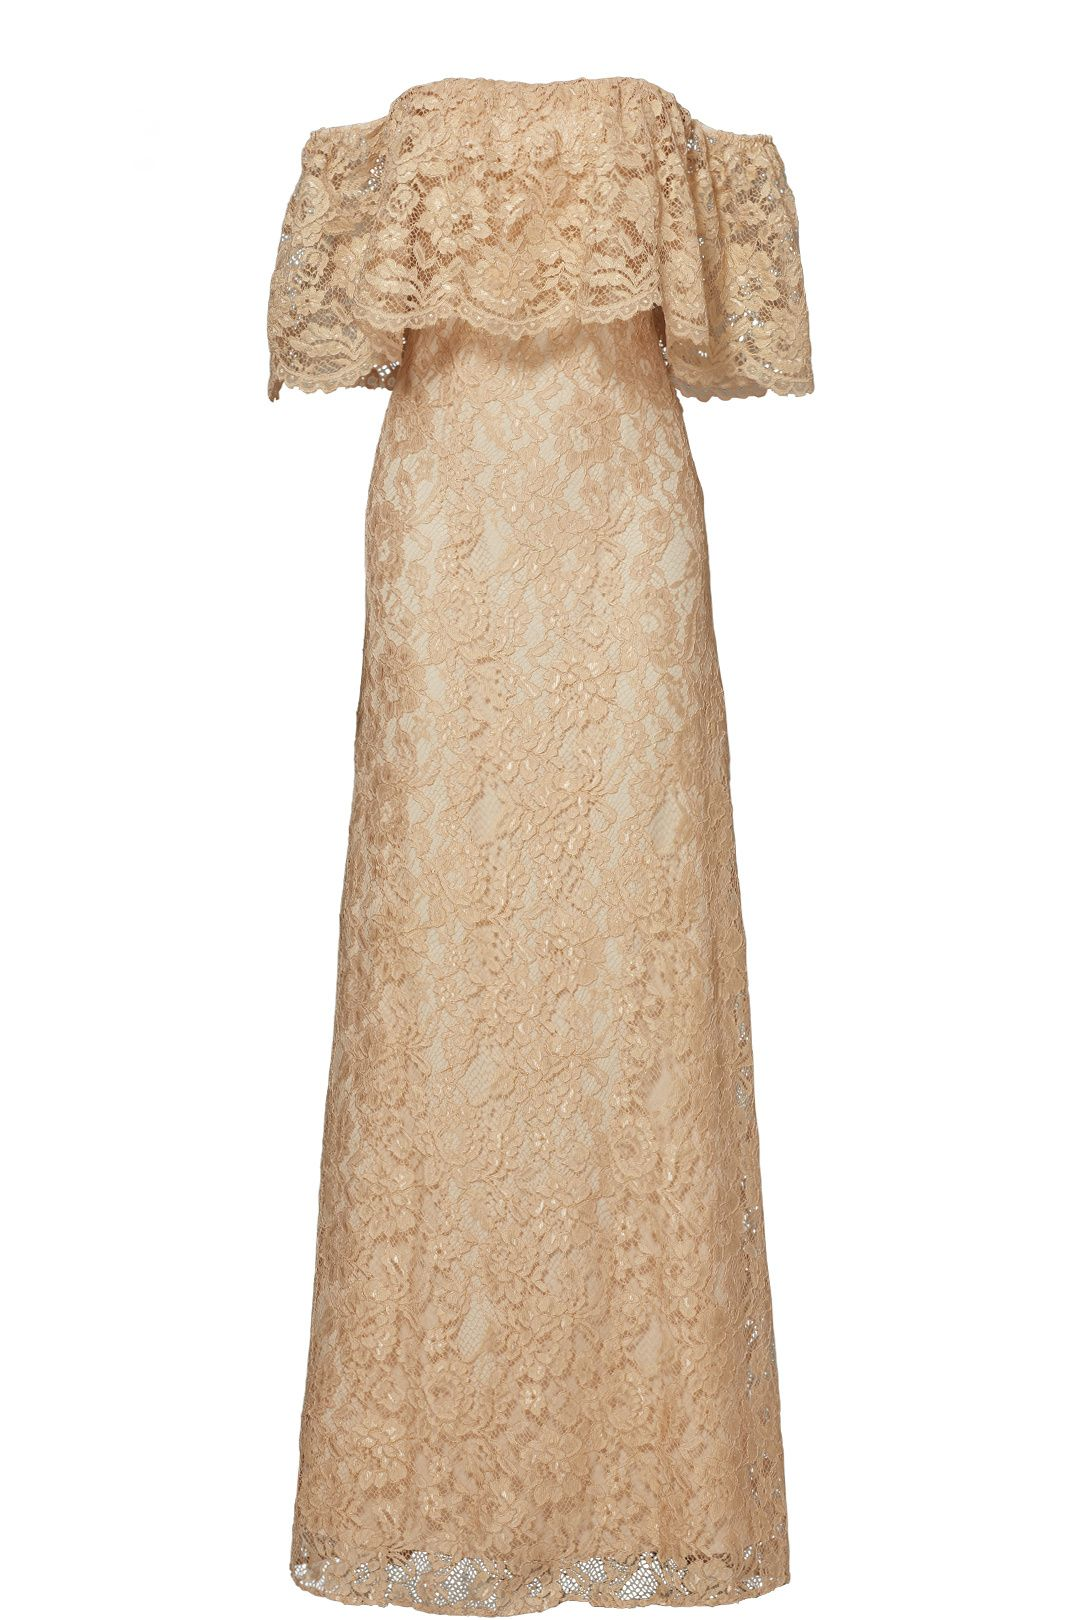 Rent gold lace catherine gown by erin erin fetherston for